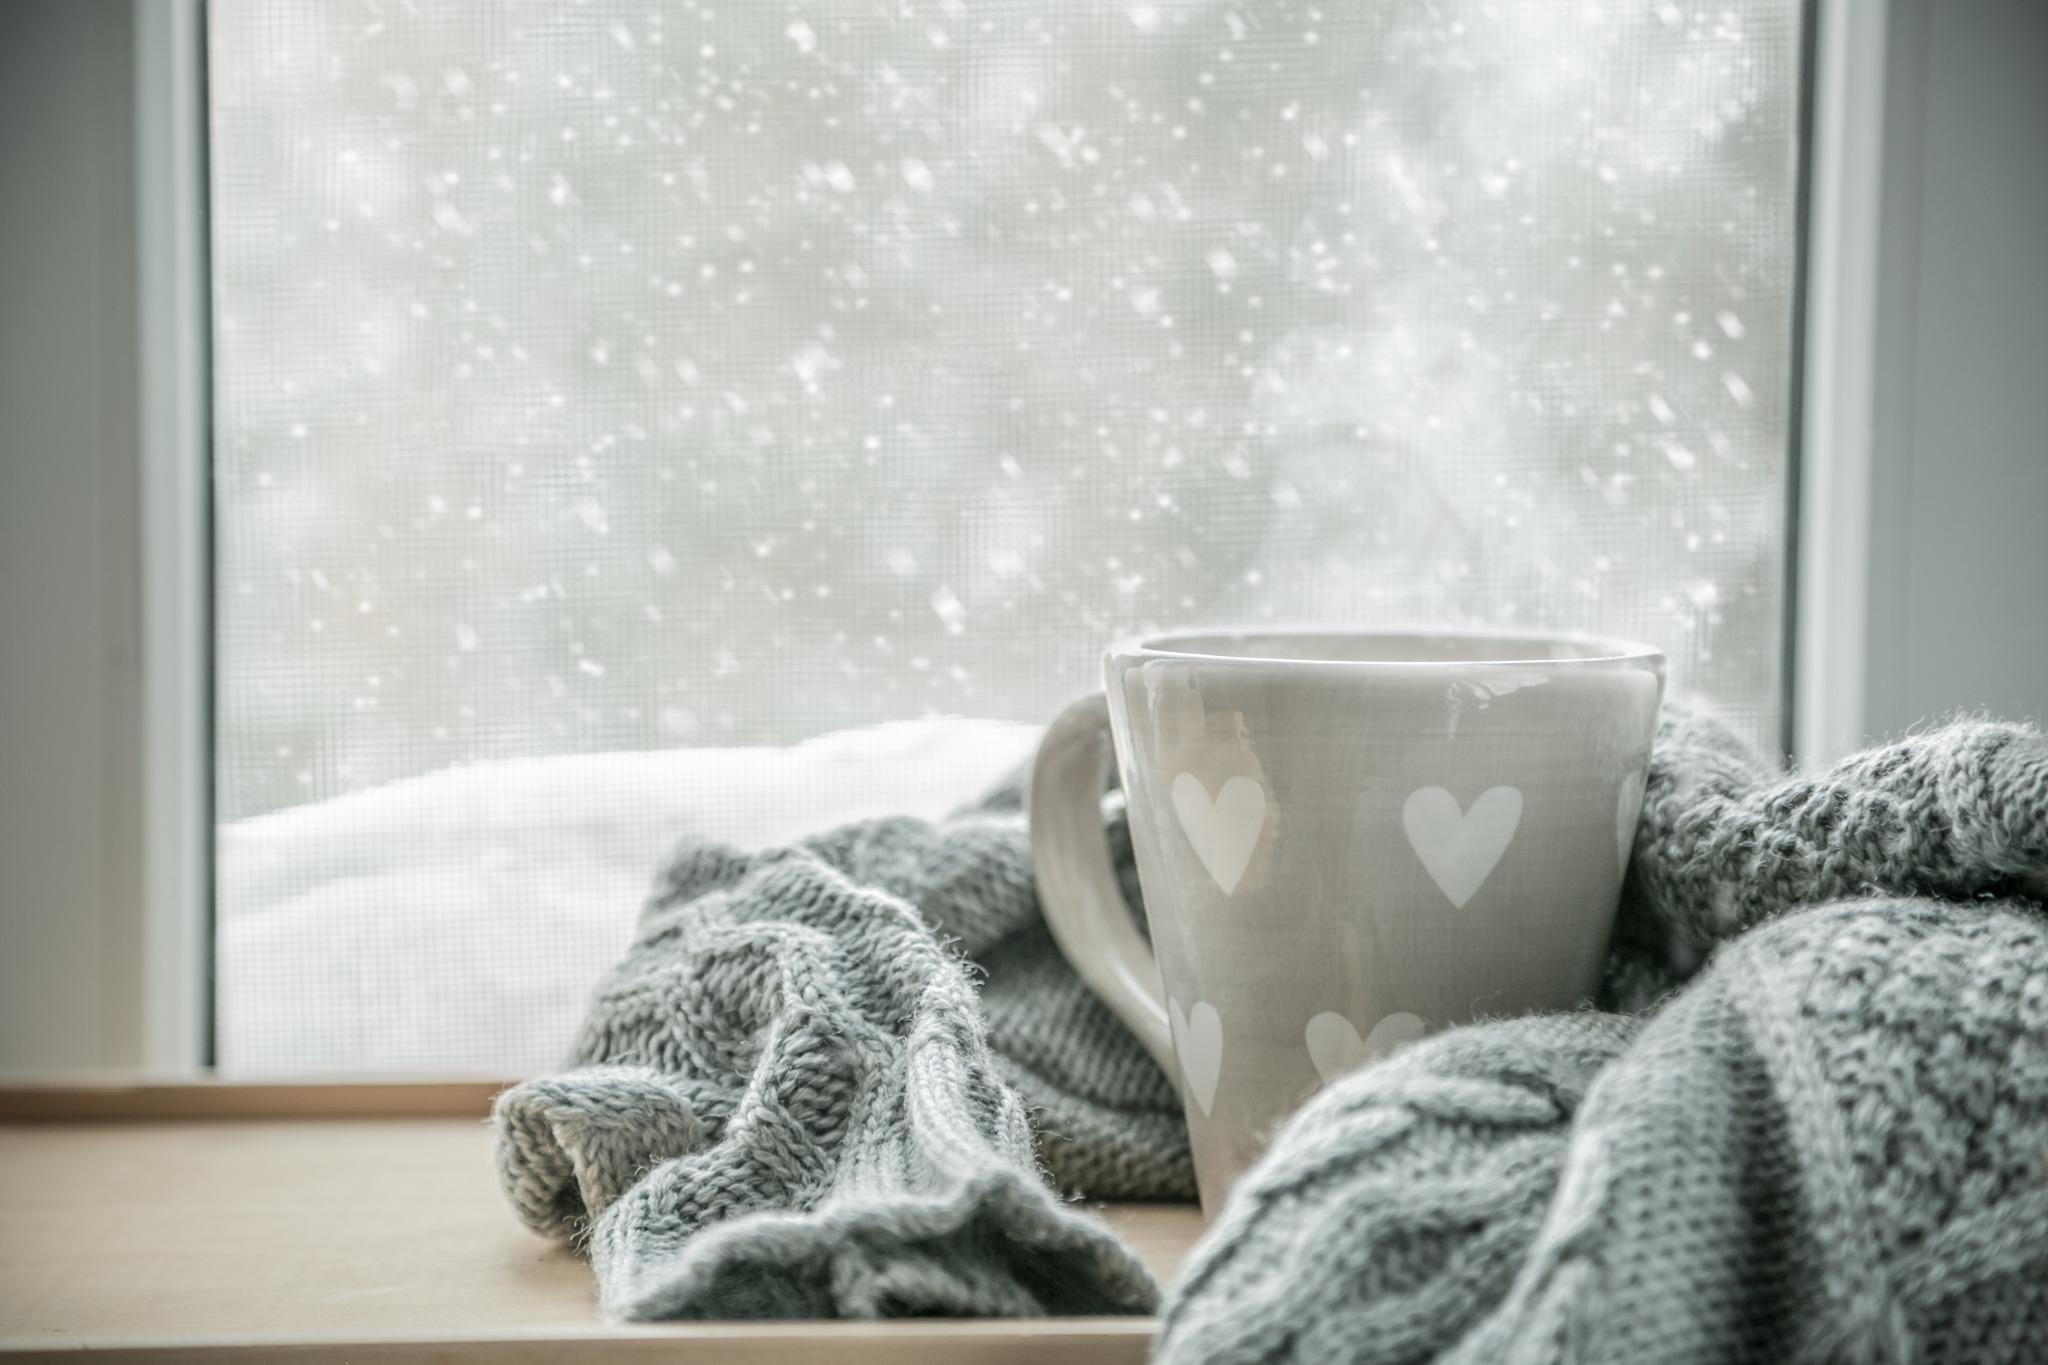 A grey mug with hearts wrapped in a scarf sitting in front of a window with a snowy background.